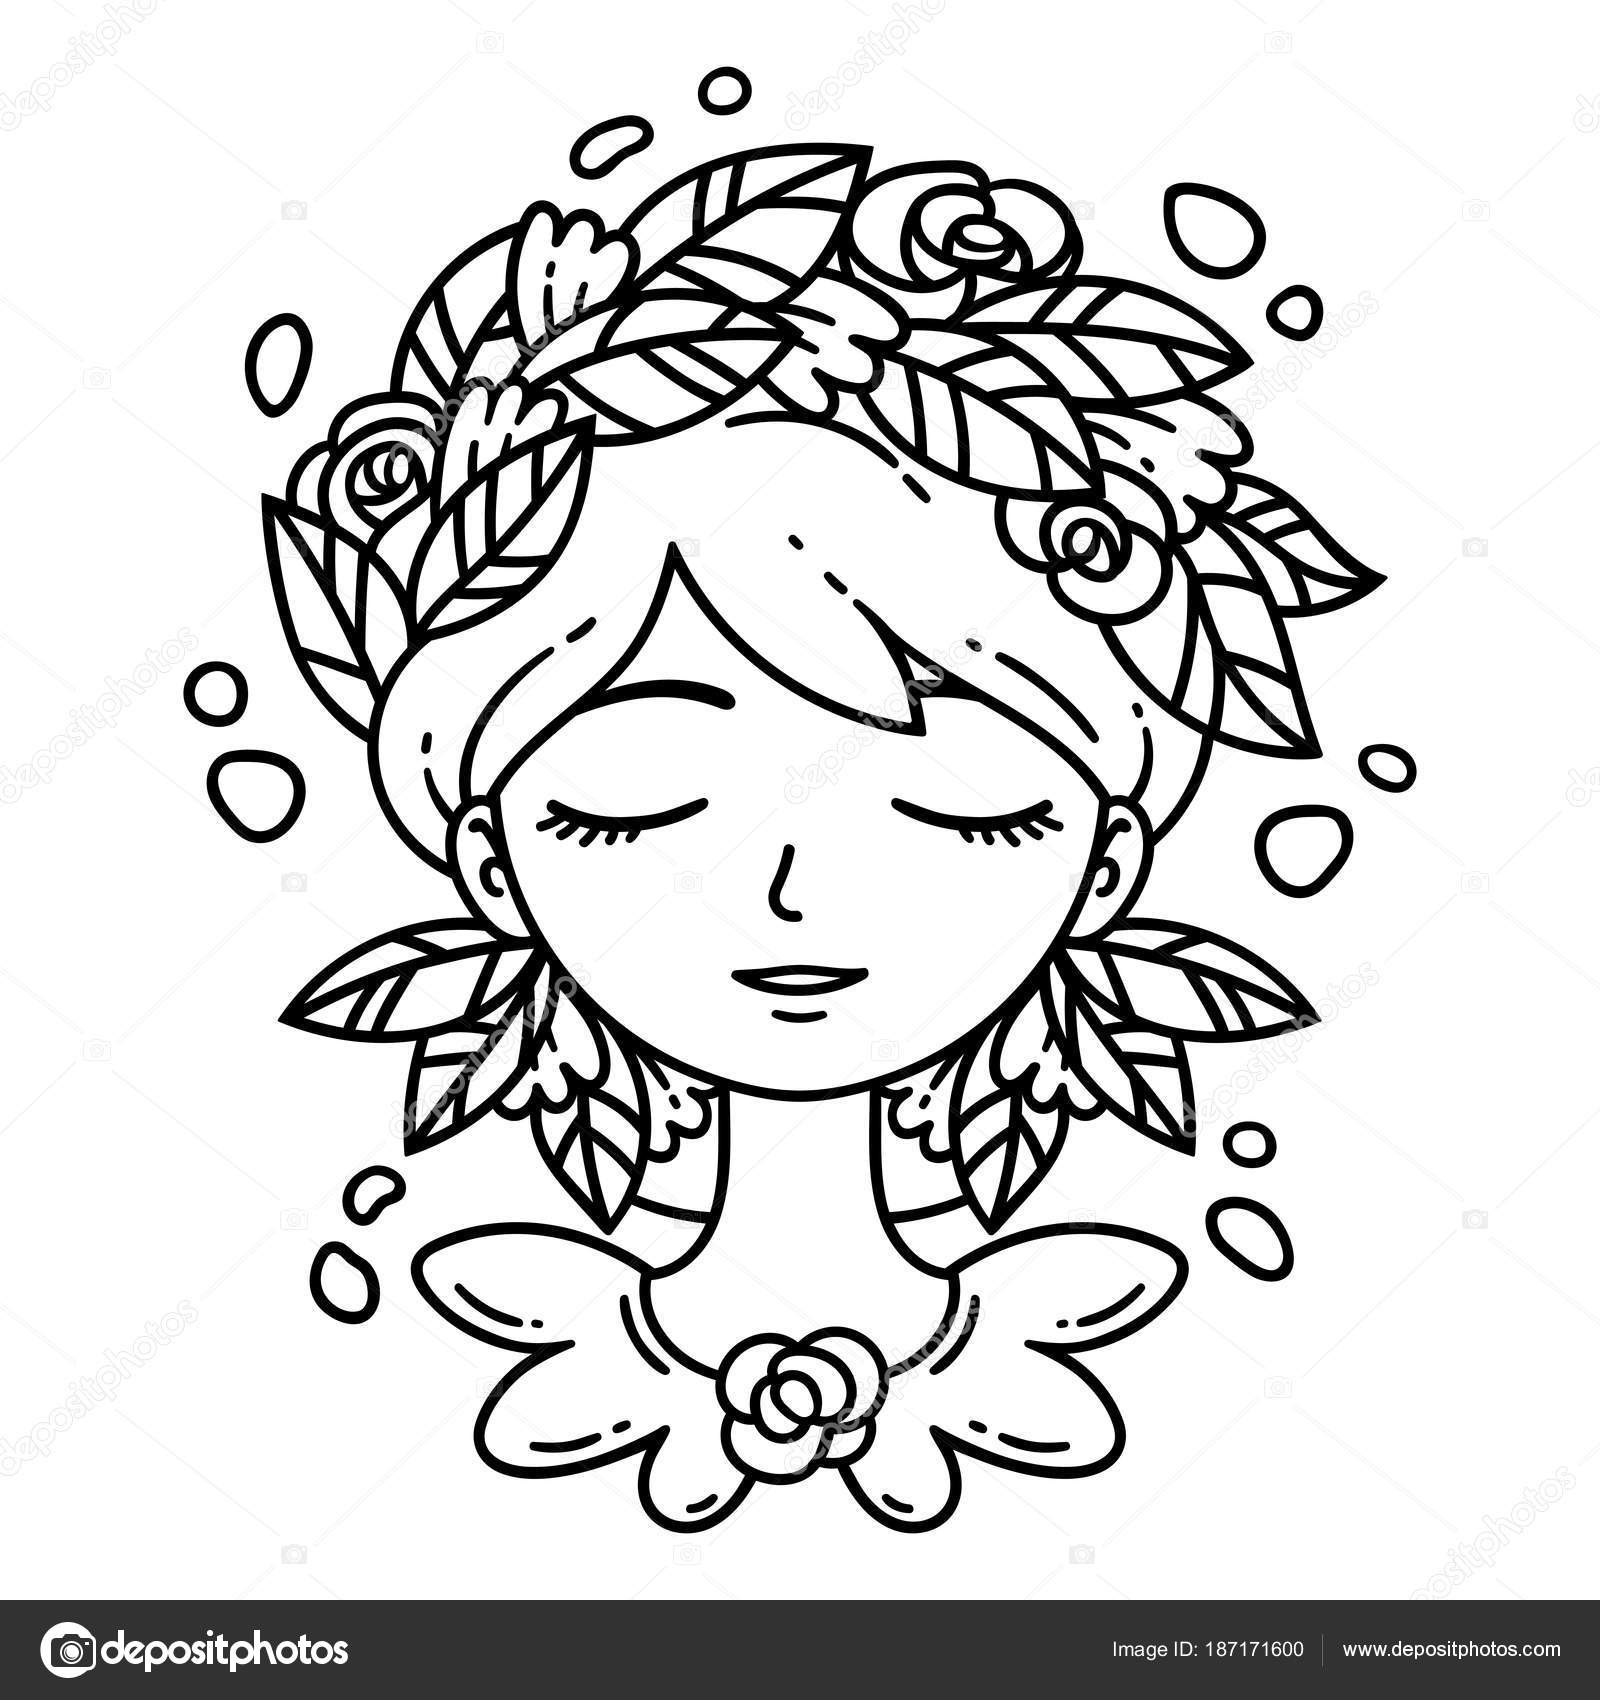 Girl With Flower In Hair Stock Vector C Danamayfay 187171600